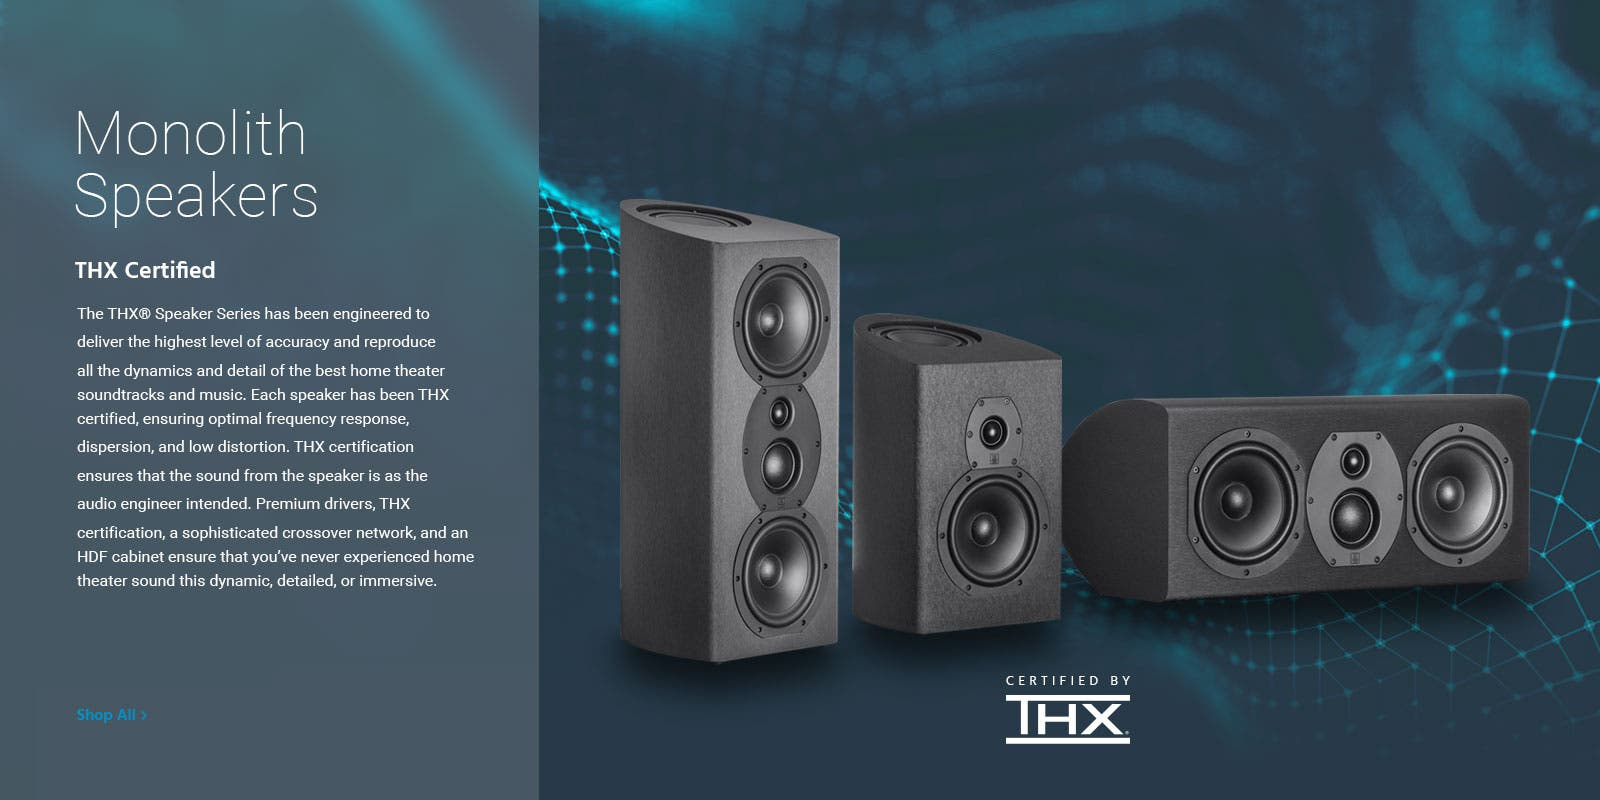 Monolith Speakers, Monolith K-BAS Reference seires. Bass in a bookshelf! The Monolith K-BAS Reference series bookshelf speaker utilizes K-BAS (Kenetic Bass Amplification System) technology to give you low bass extension that no other speaker at this size or in this price range can match. Air Motion Cinema Series. The monolith air motion cinema series speakers brings the theater experience home! Engineered for accuracy, dynamics, and detail, the air motion cinema series sounds great for both movies and music, espically when used with a monolith series power amplifier.Shop All